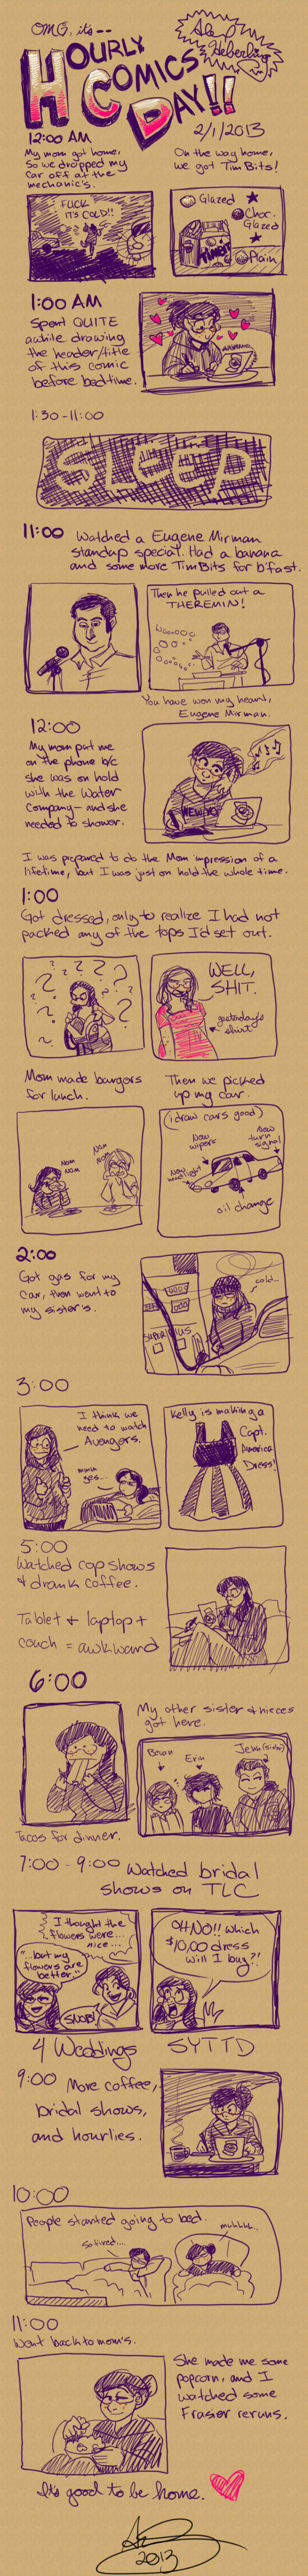 Hourly Comics Day